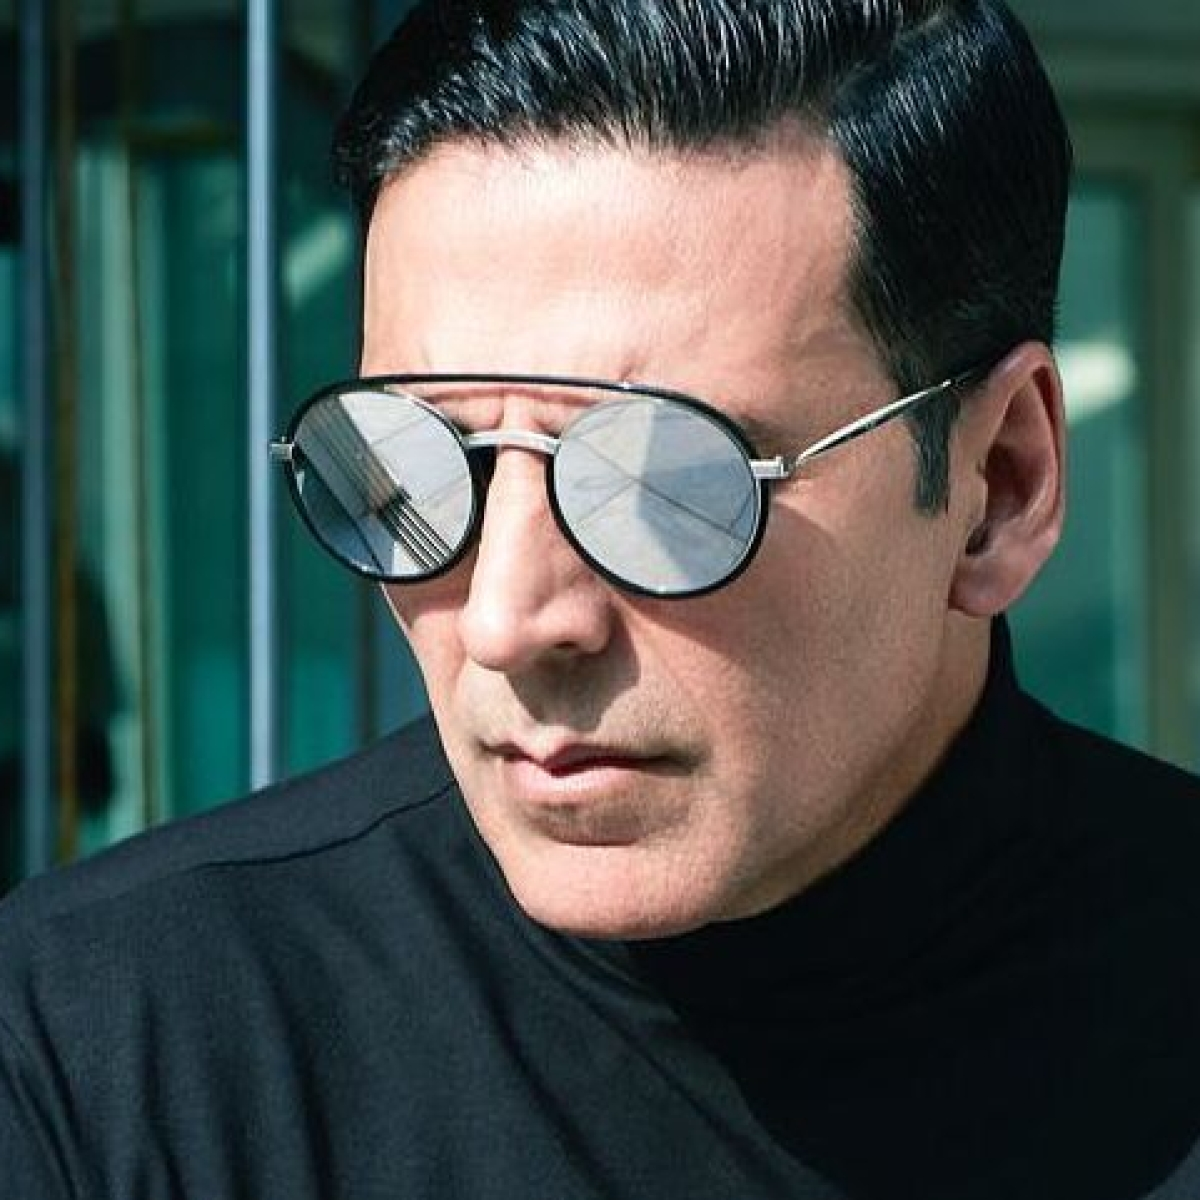 Here's what Akshay Kumar did when he found a frog while looking for a socket to charge his phone